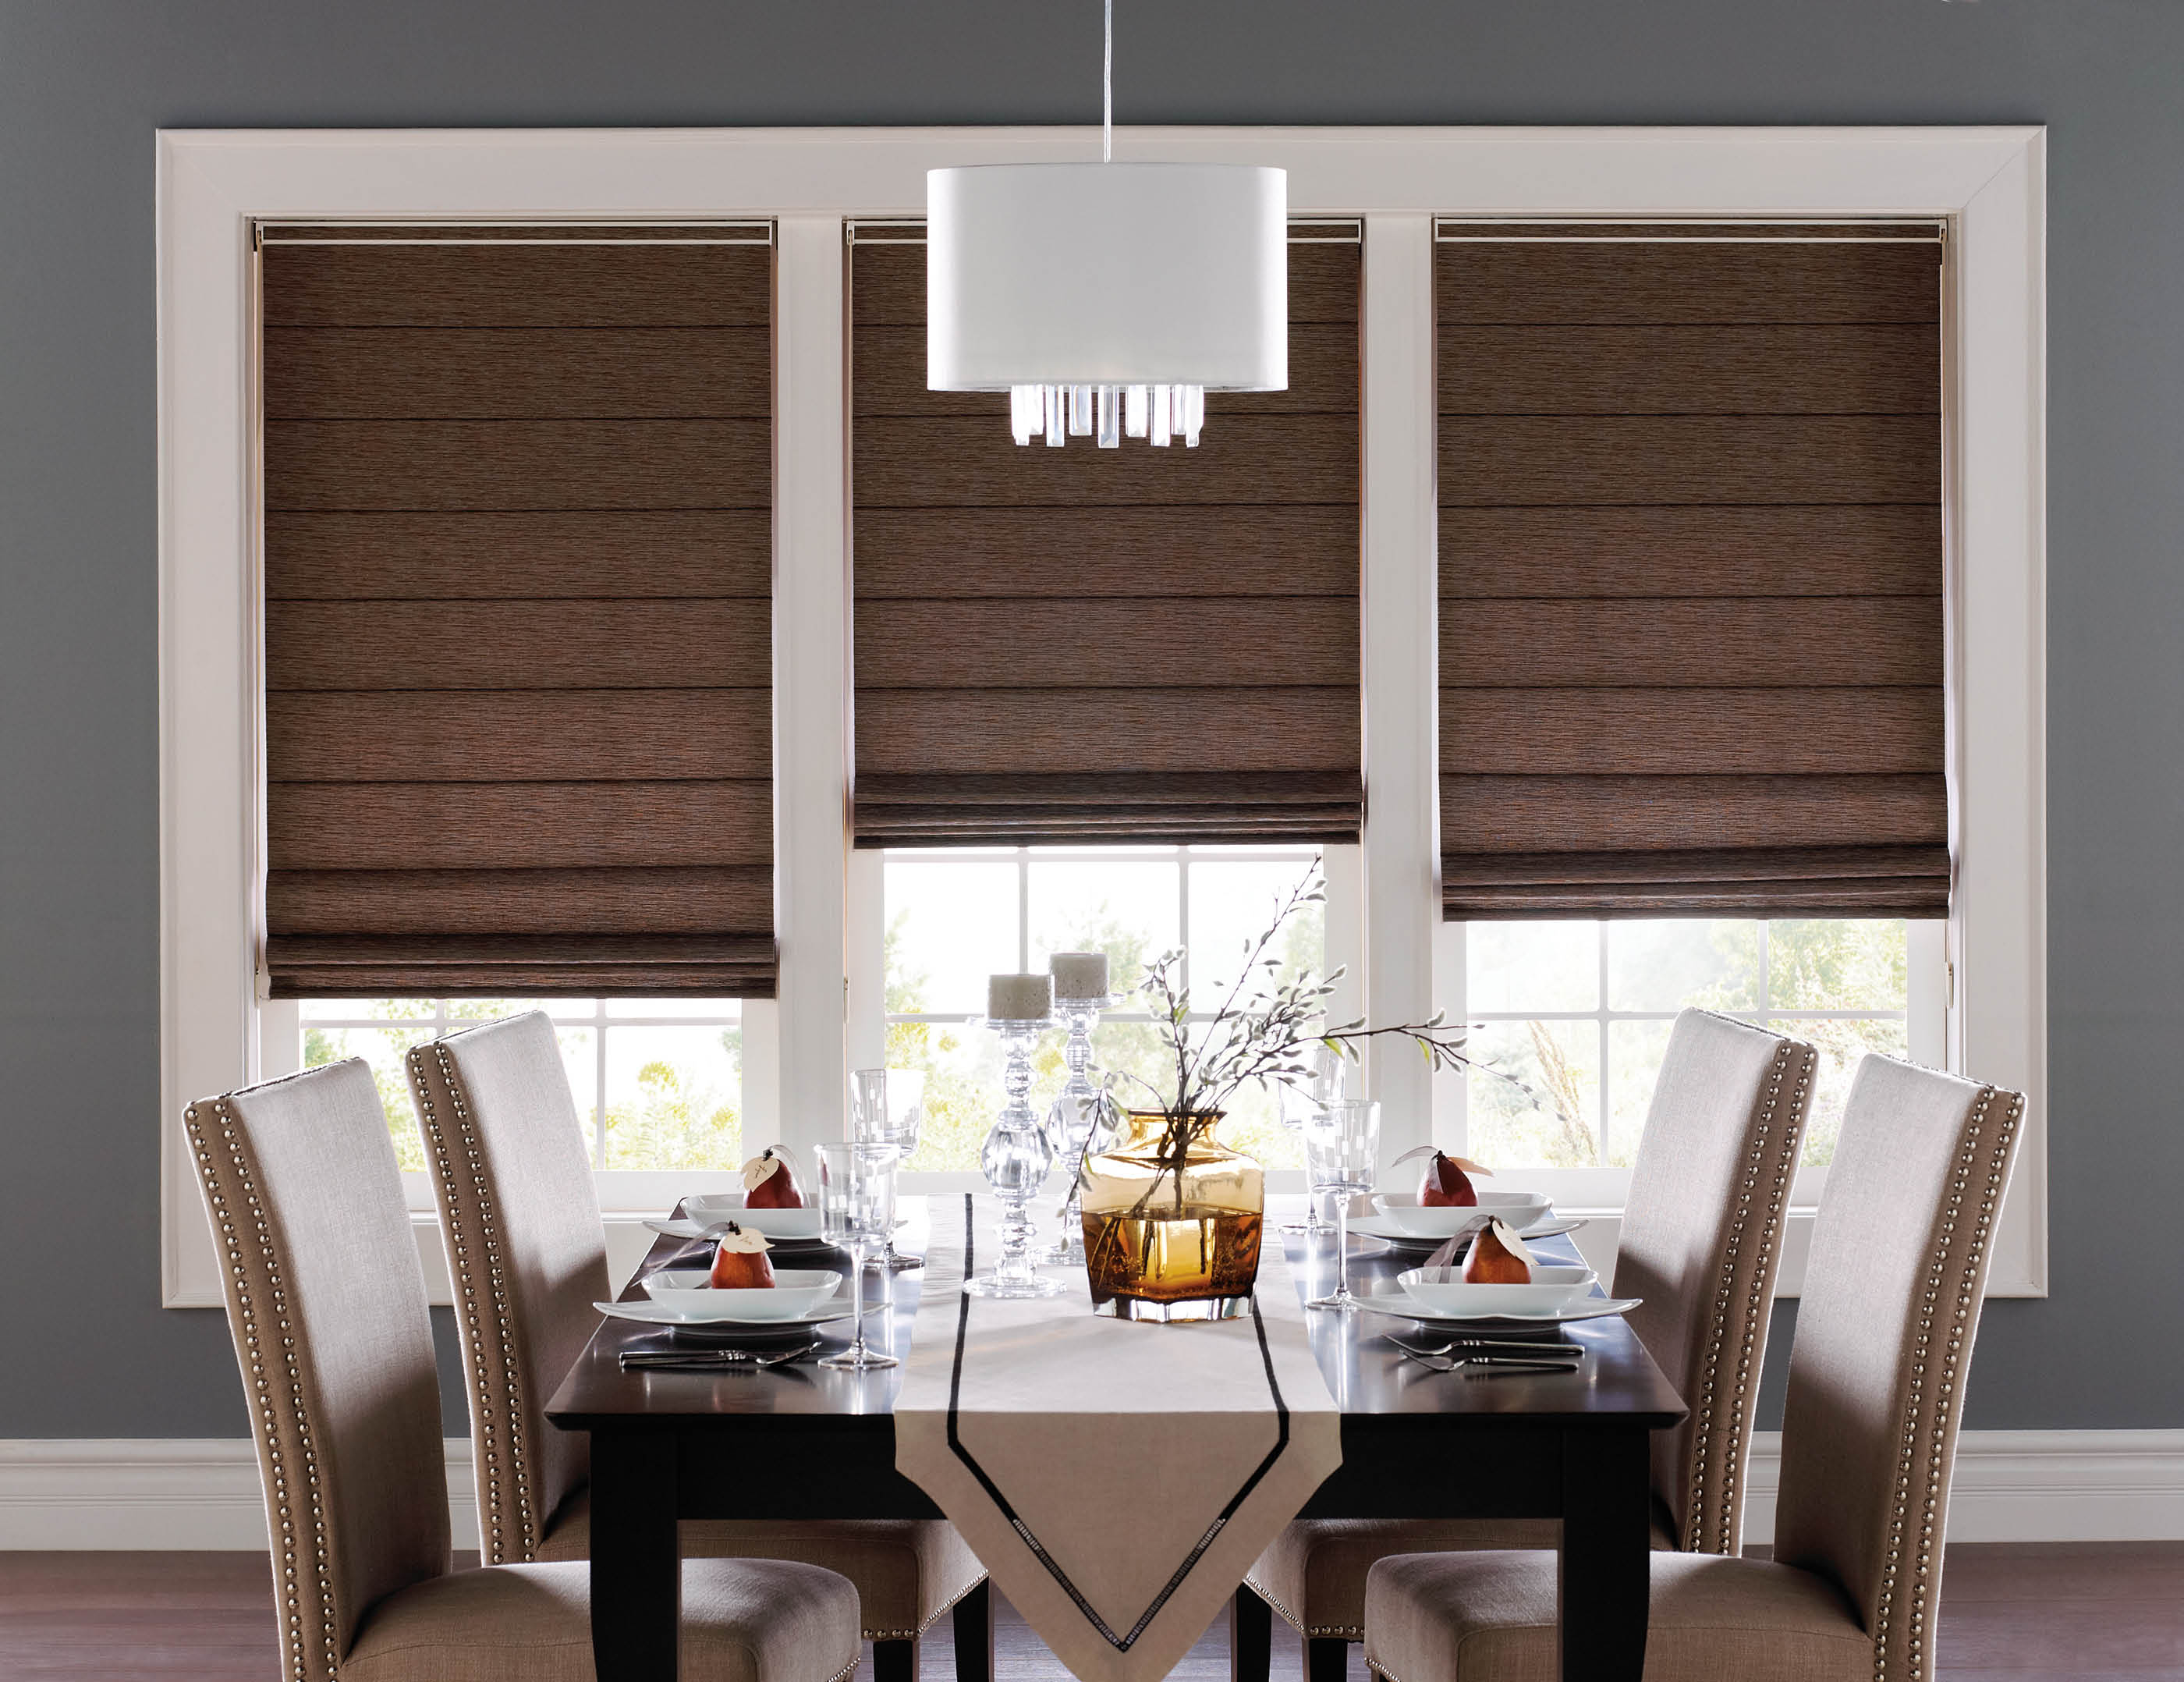 budget blinds window treatments window coverings window blinds southeast cincinnati ohio